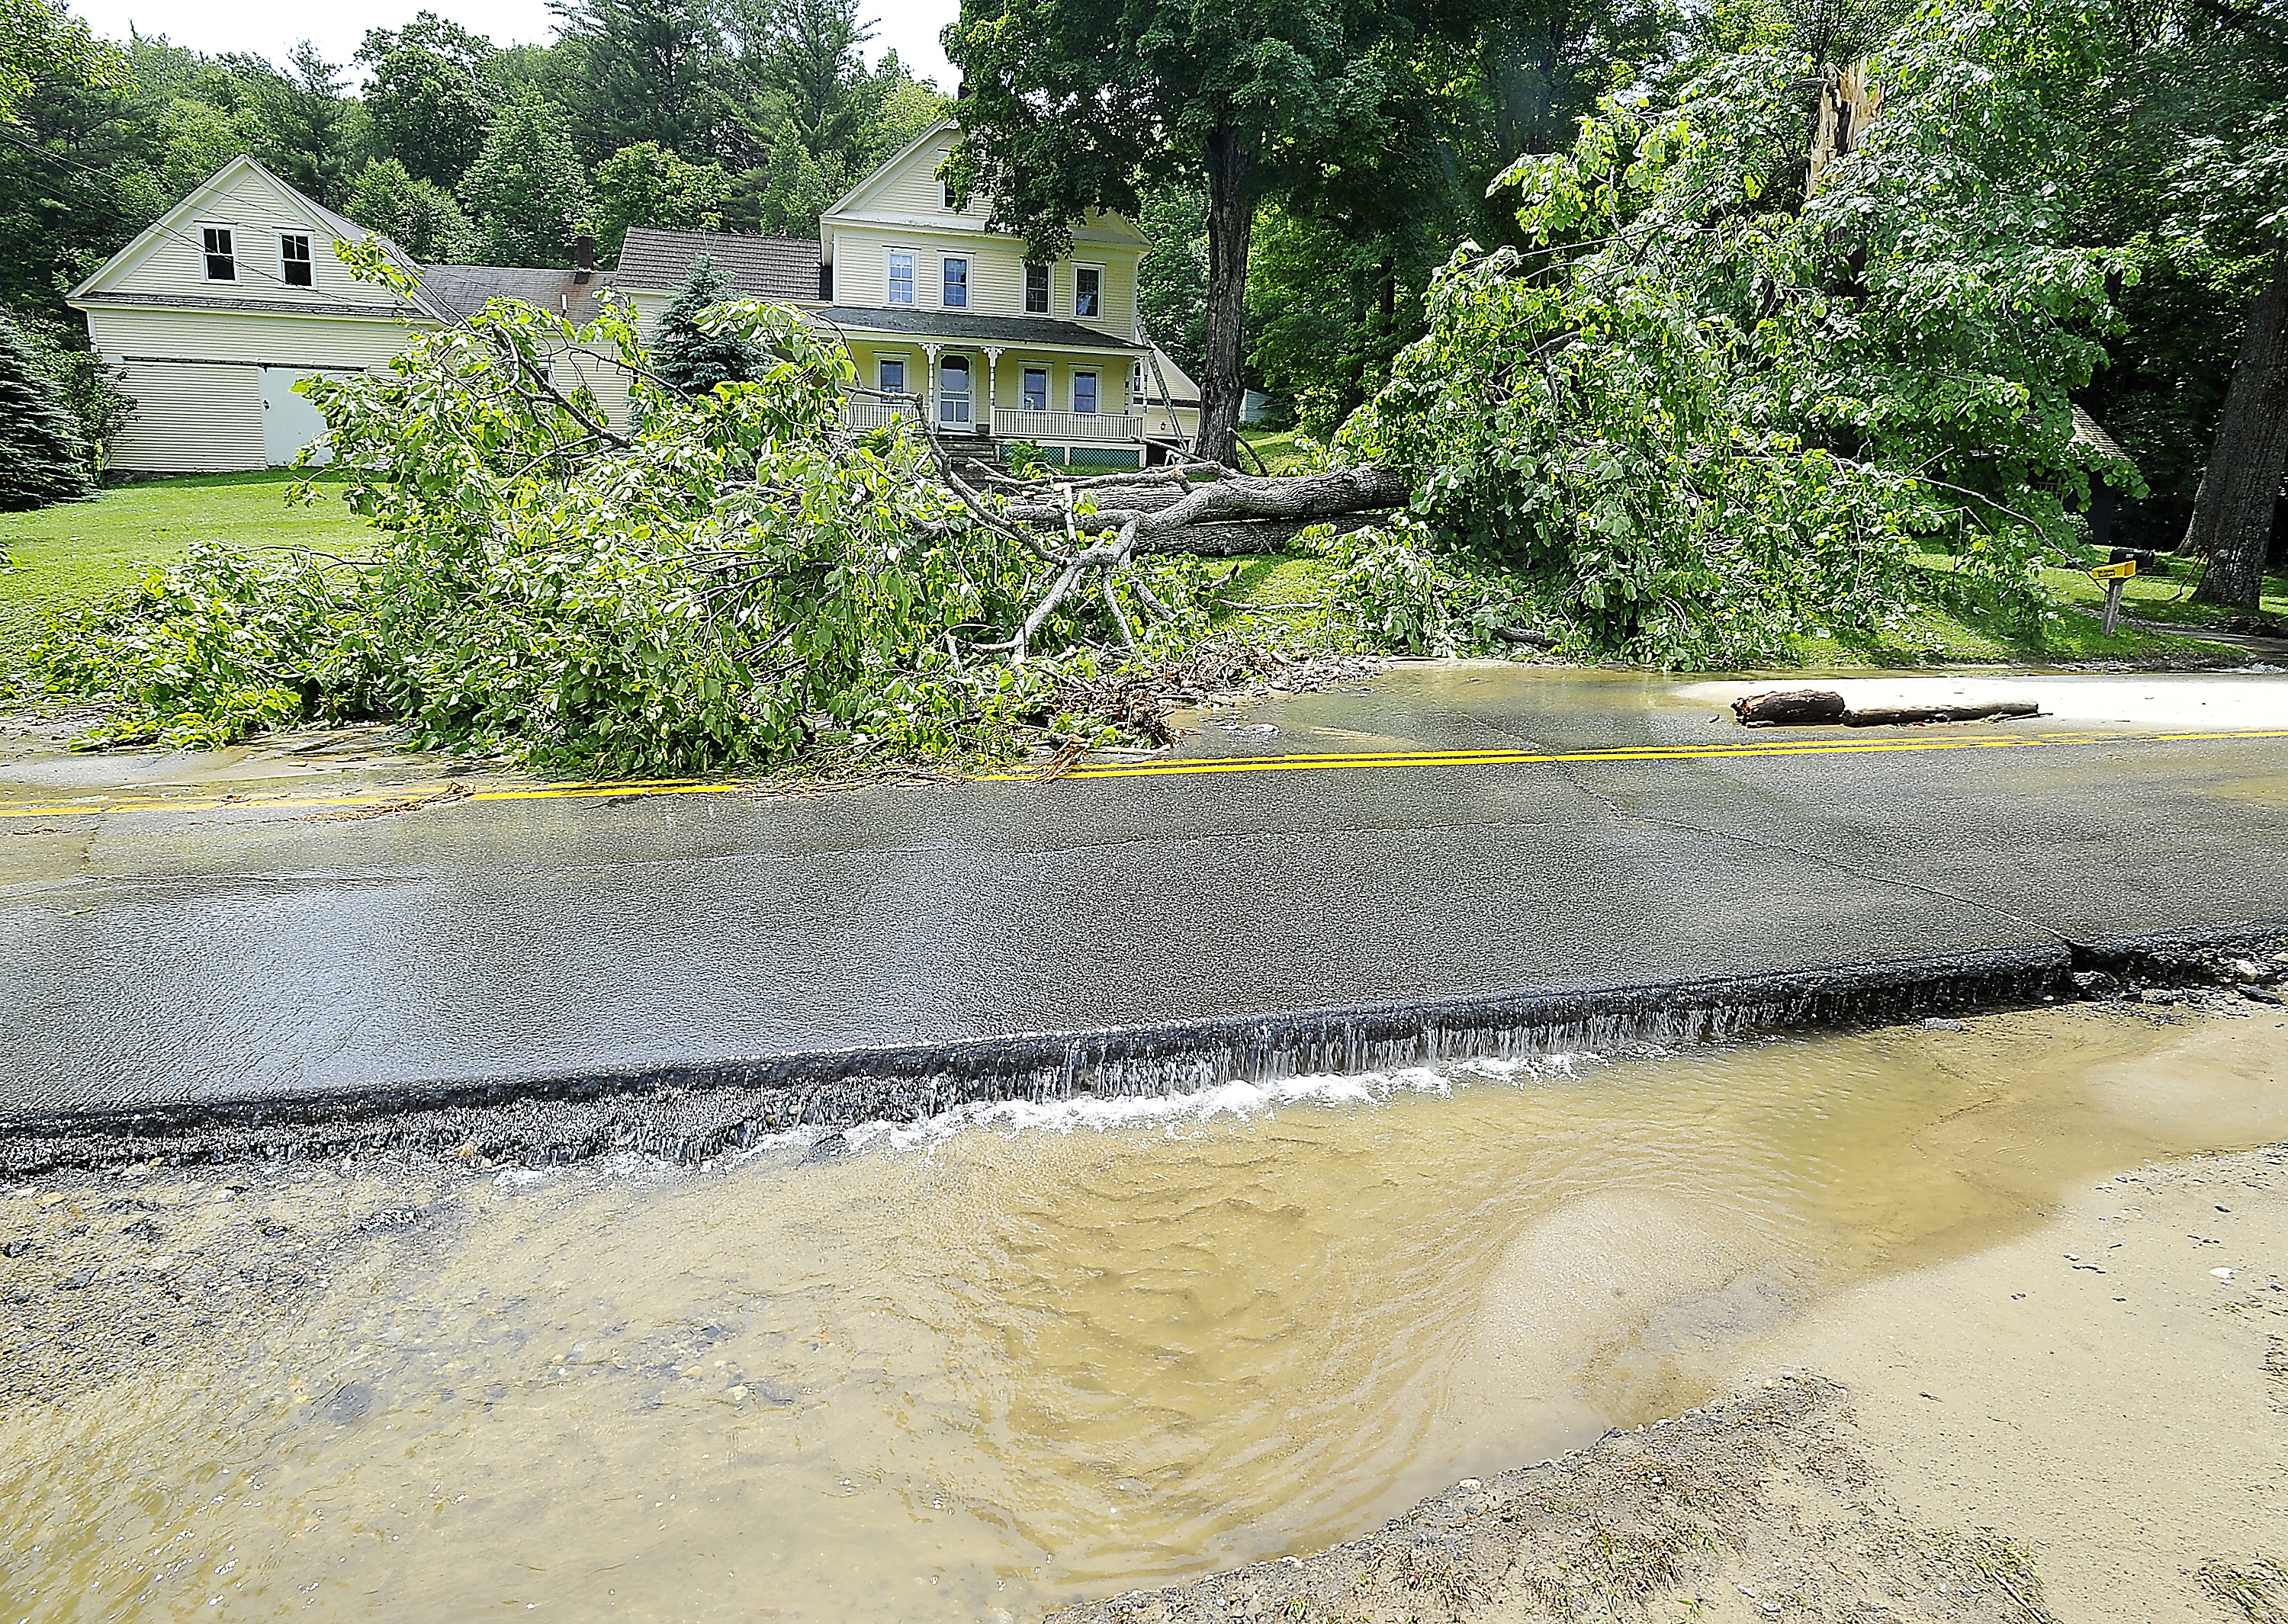 Water flows over the washed-out Wyman Hill Road in Rumford on Thursday. A tree came crashing down at the home of Karen Blanchard on Wednesday during the storms.